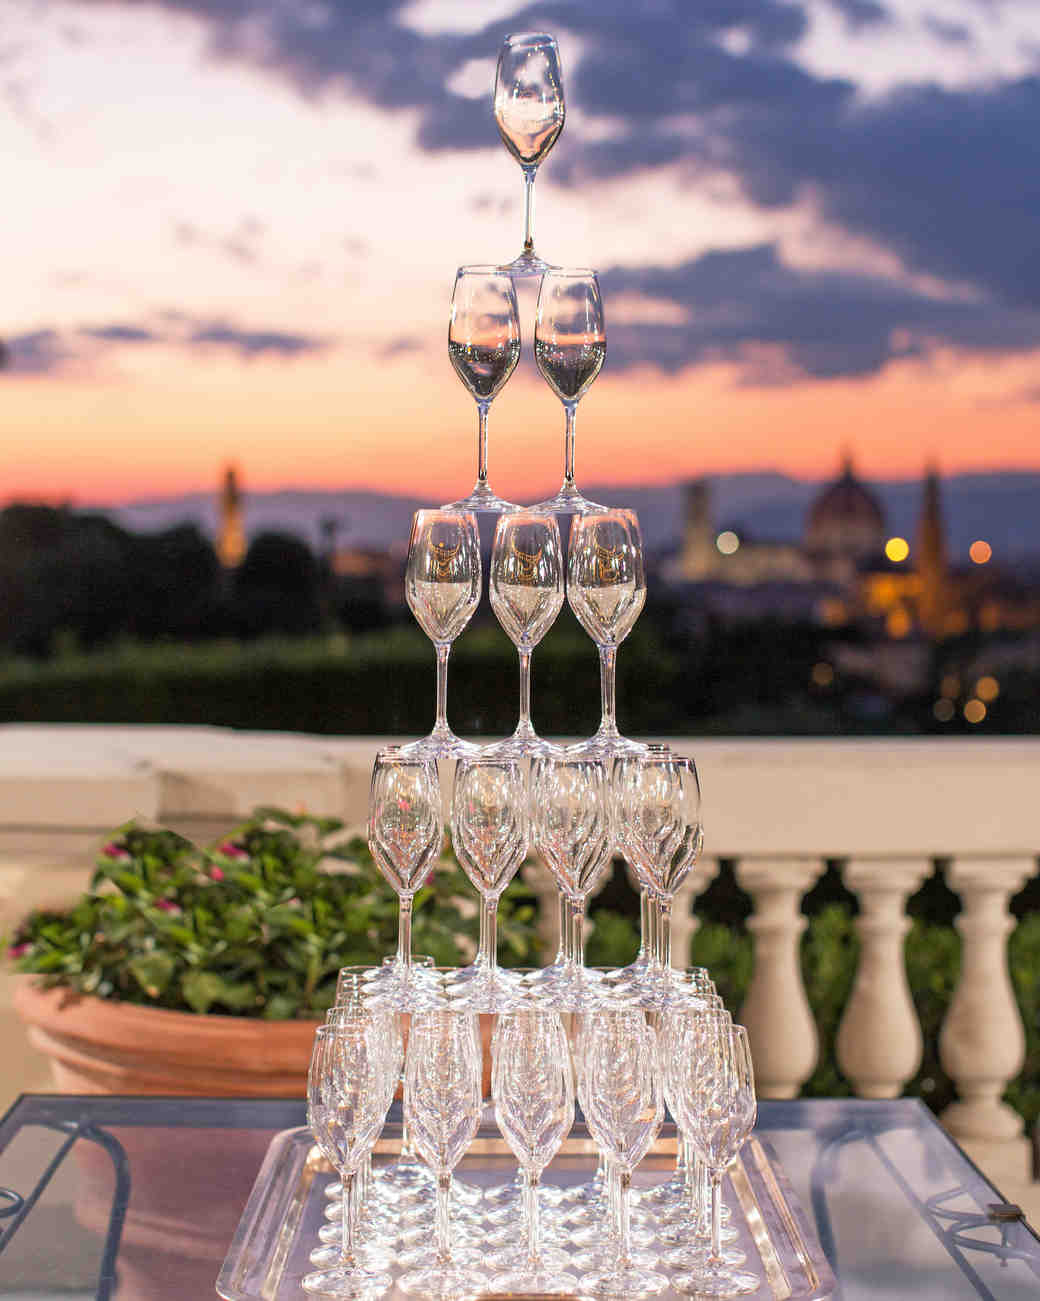 champagne tower at sunset